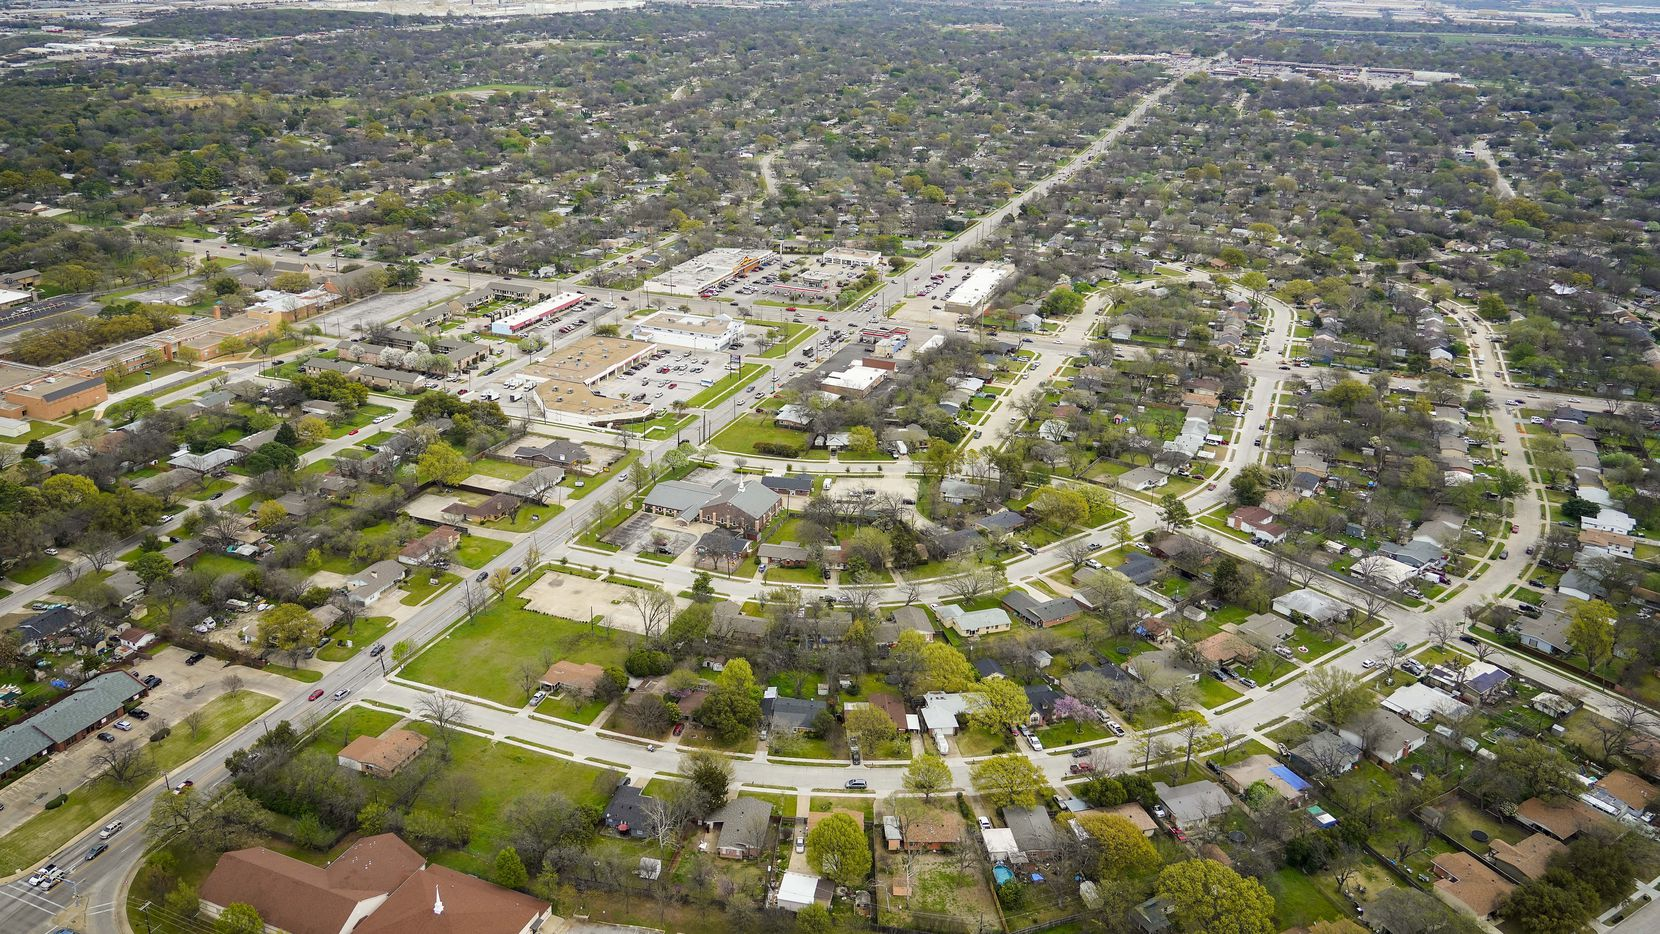 Aerial view of residential neighborhoods and retail on Thursday, March 12, 2020, in Arlington, TX.